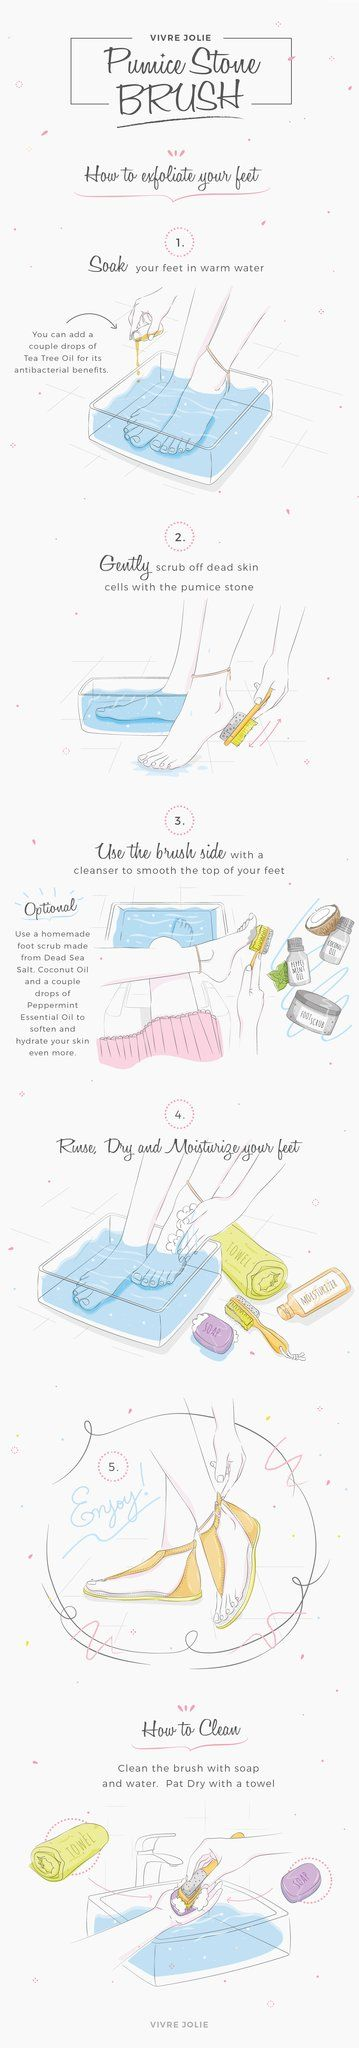 How to make your feet soft and get rid of all the dry skin how to make your feet soft and get rid of all the dry skin hygiene pinterest dry skin remedies and feet treatment ccuart Gallery